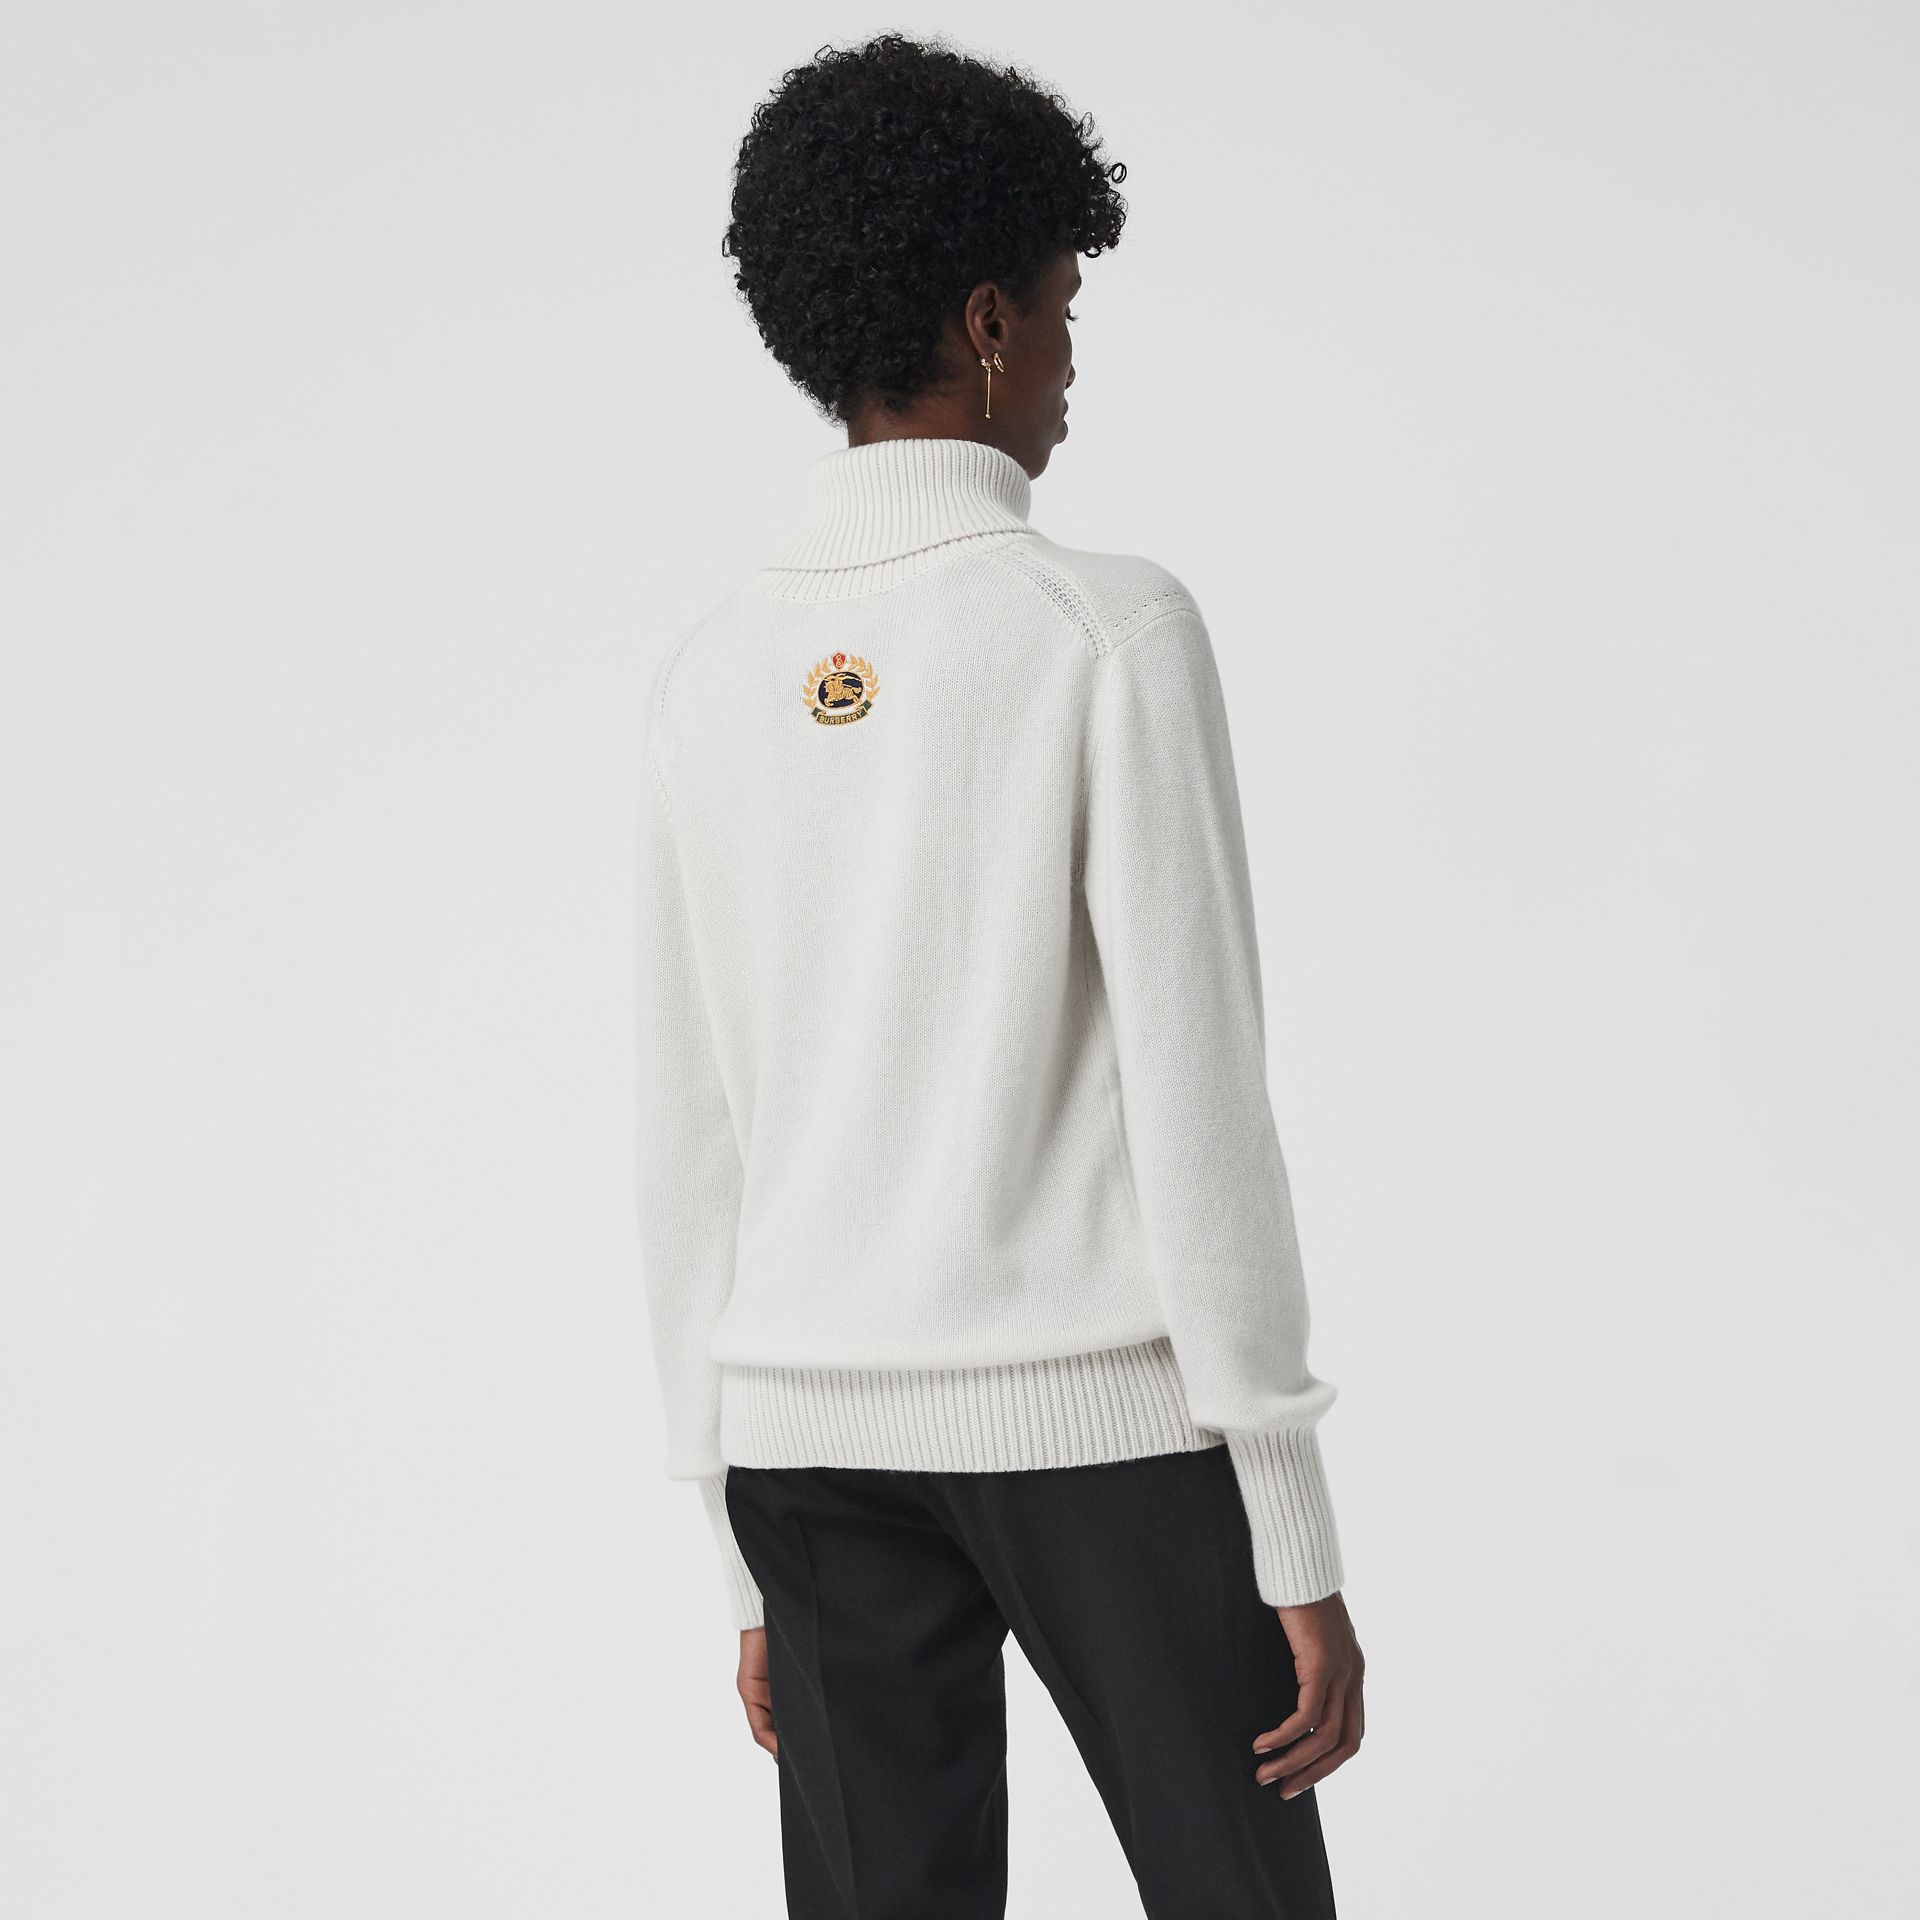 Embroidered Crest Cashmere Roll-neck Sweater in White - Women | Burberry United Kingdom - gallery image 2